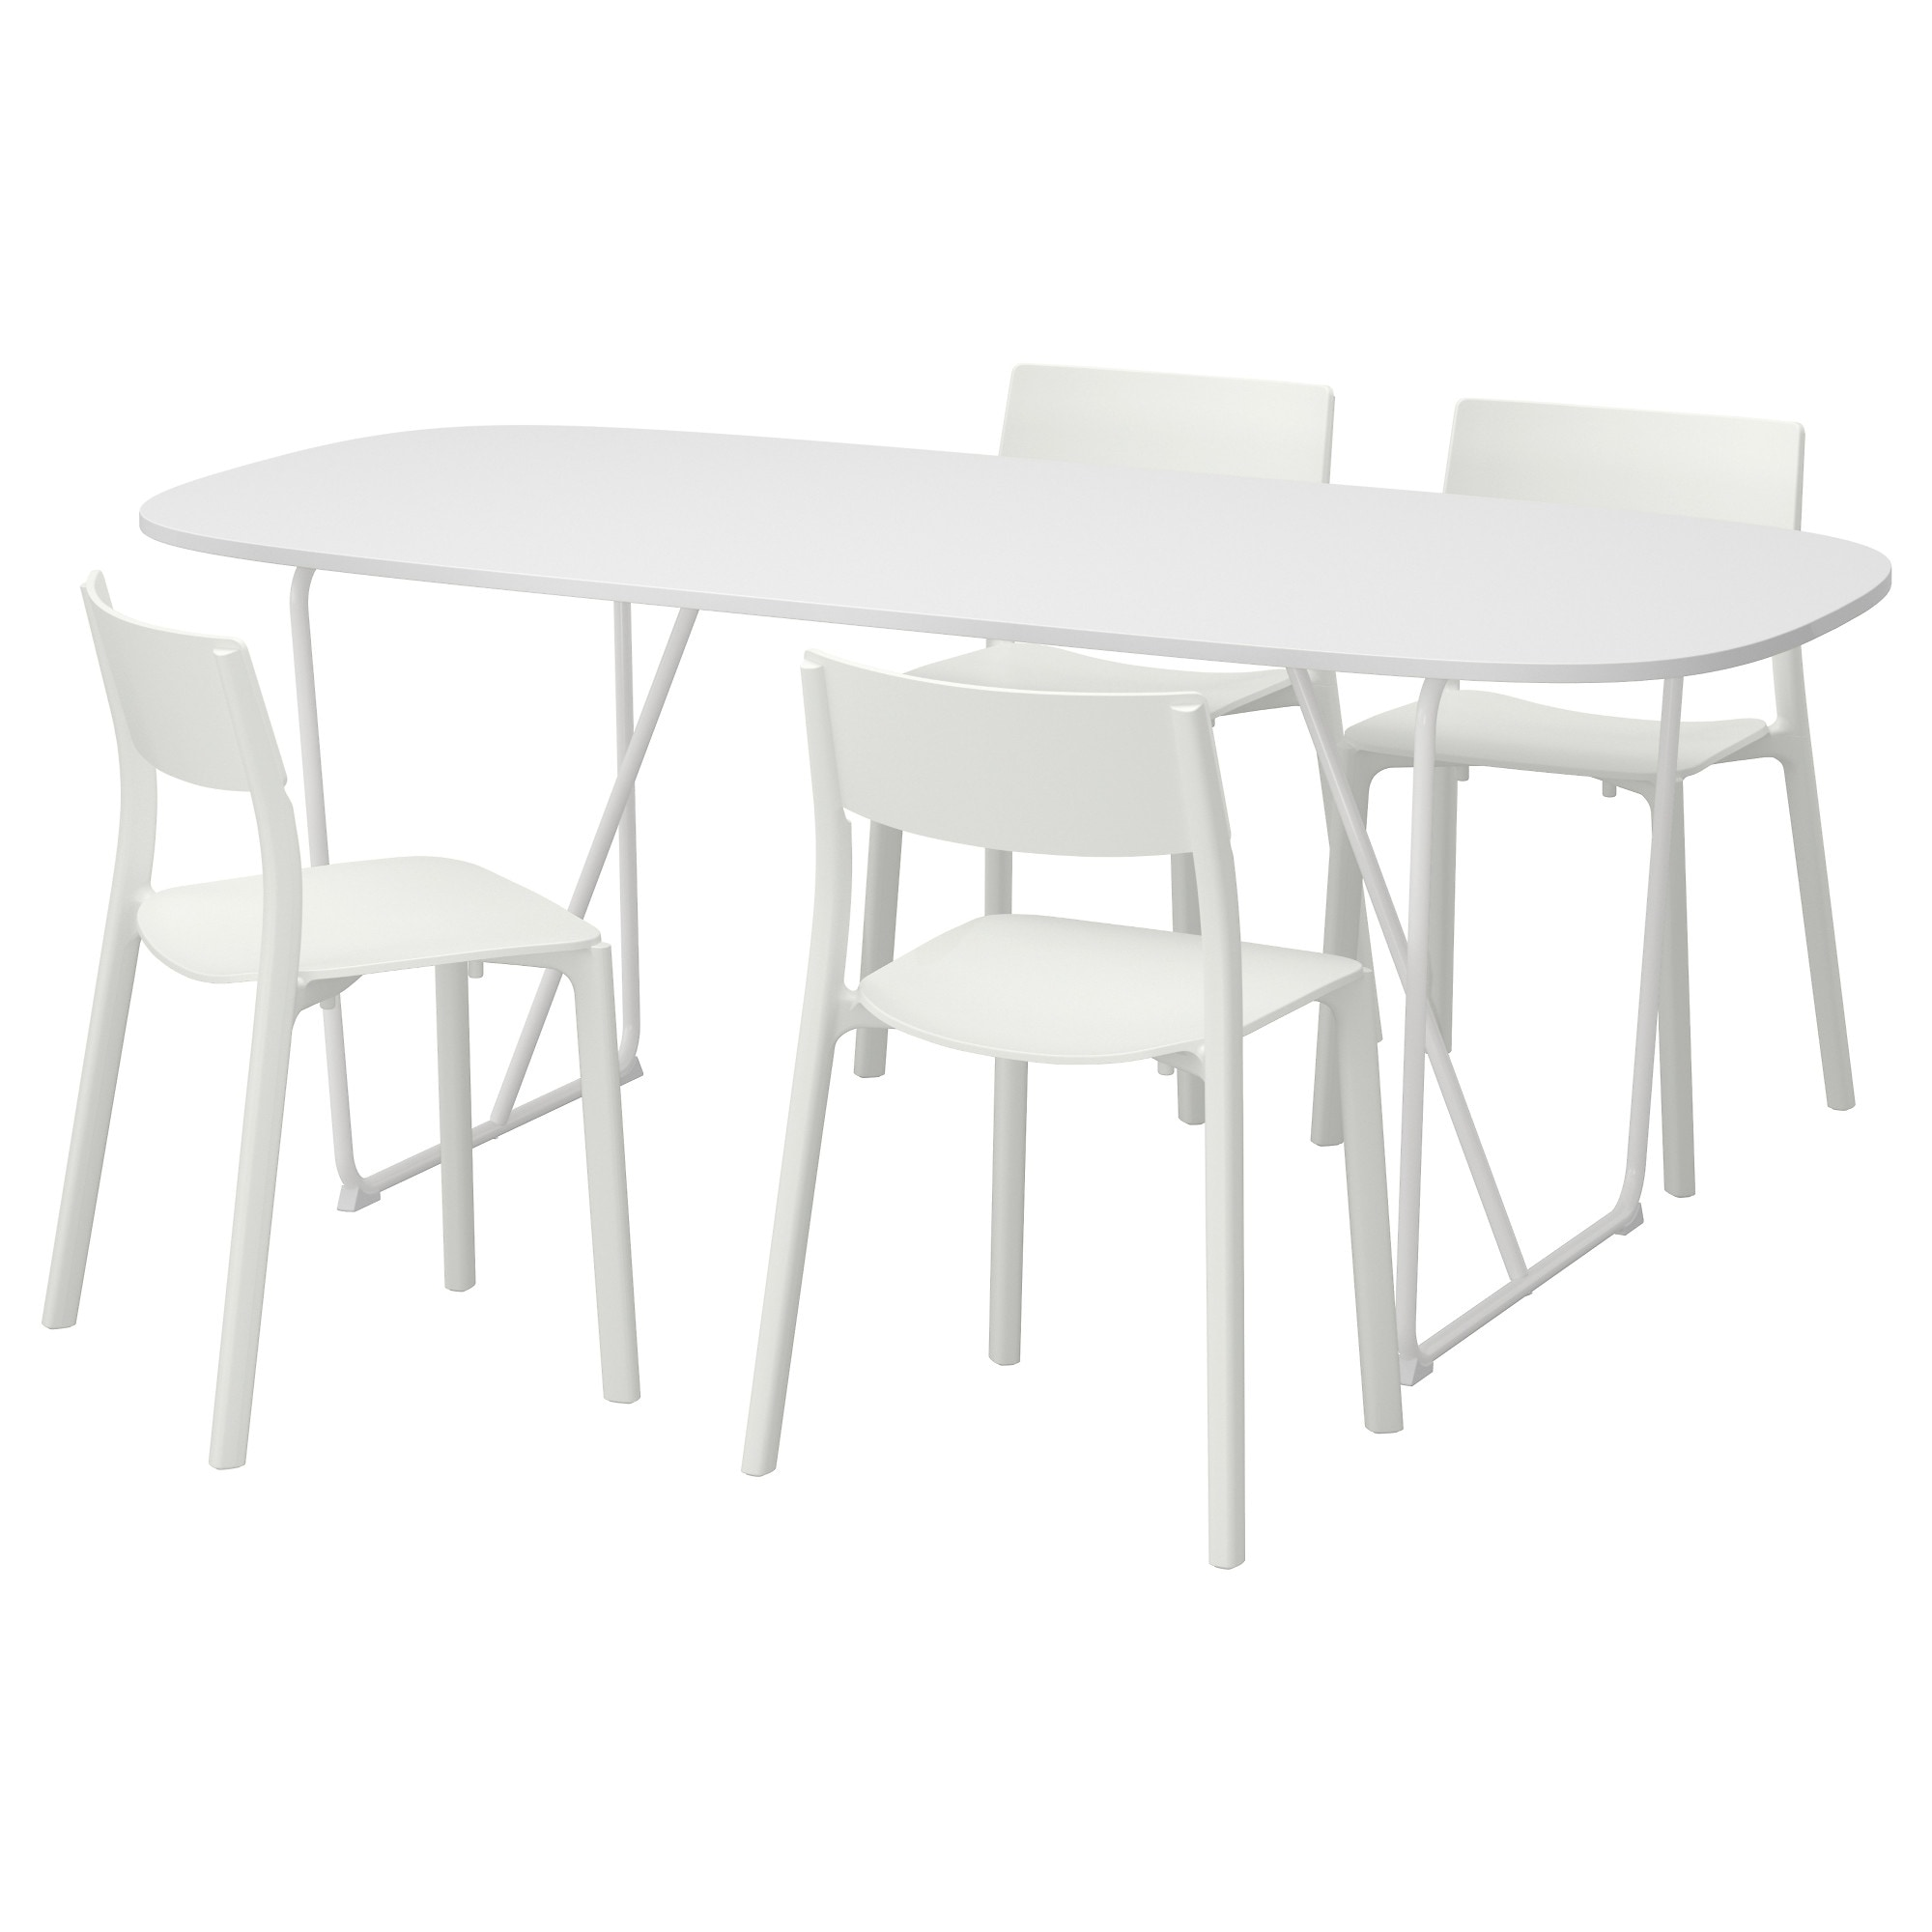 Ikea dining table white - Oppeby Backaryd Janinge Table And 4 Chairs White White Length 72